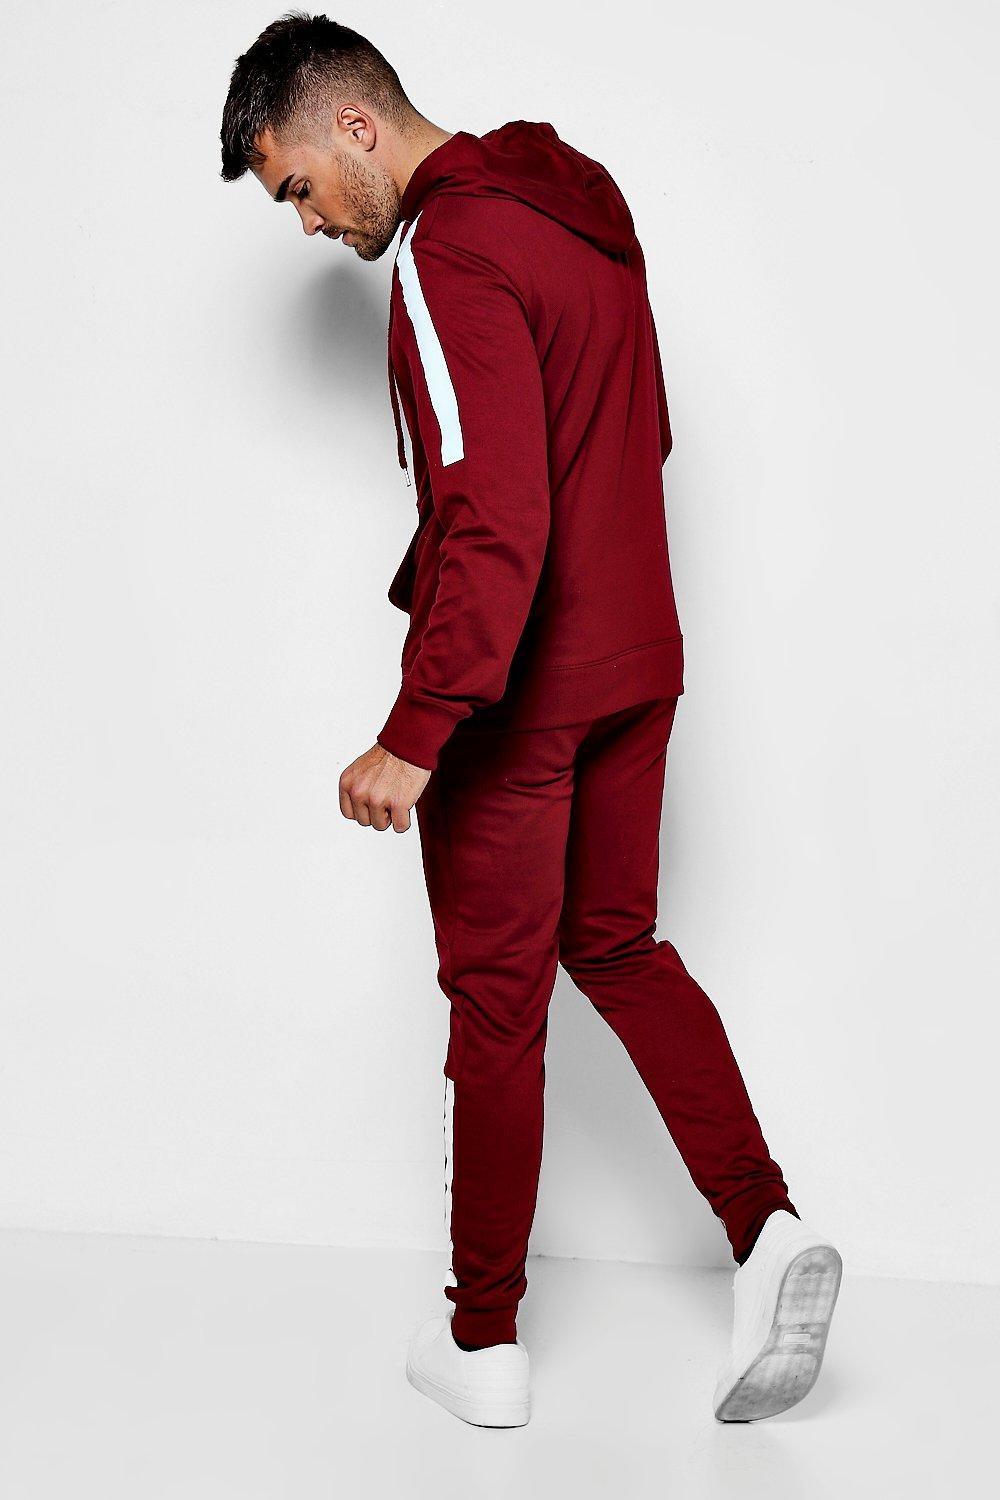 bd09c269b11c Our stylists will find you something similar if you sign up for Thread.  Thread is an online personal styling service for men, ...